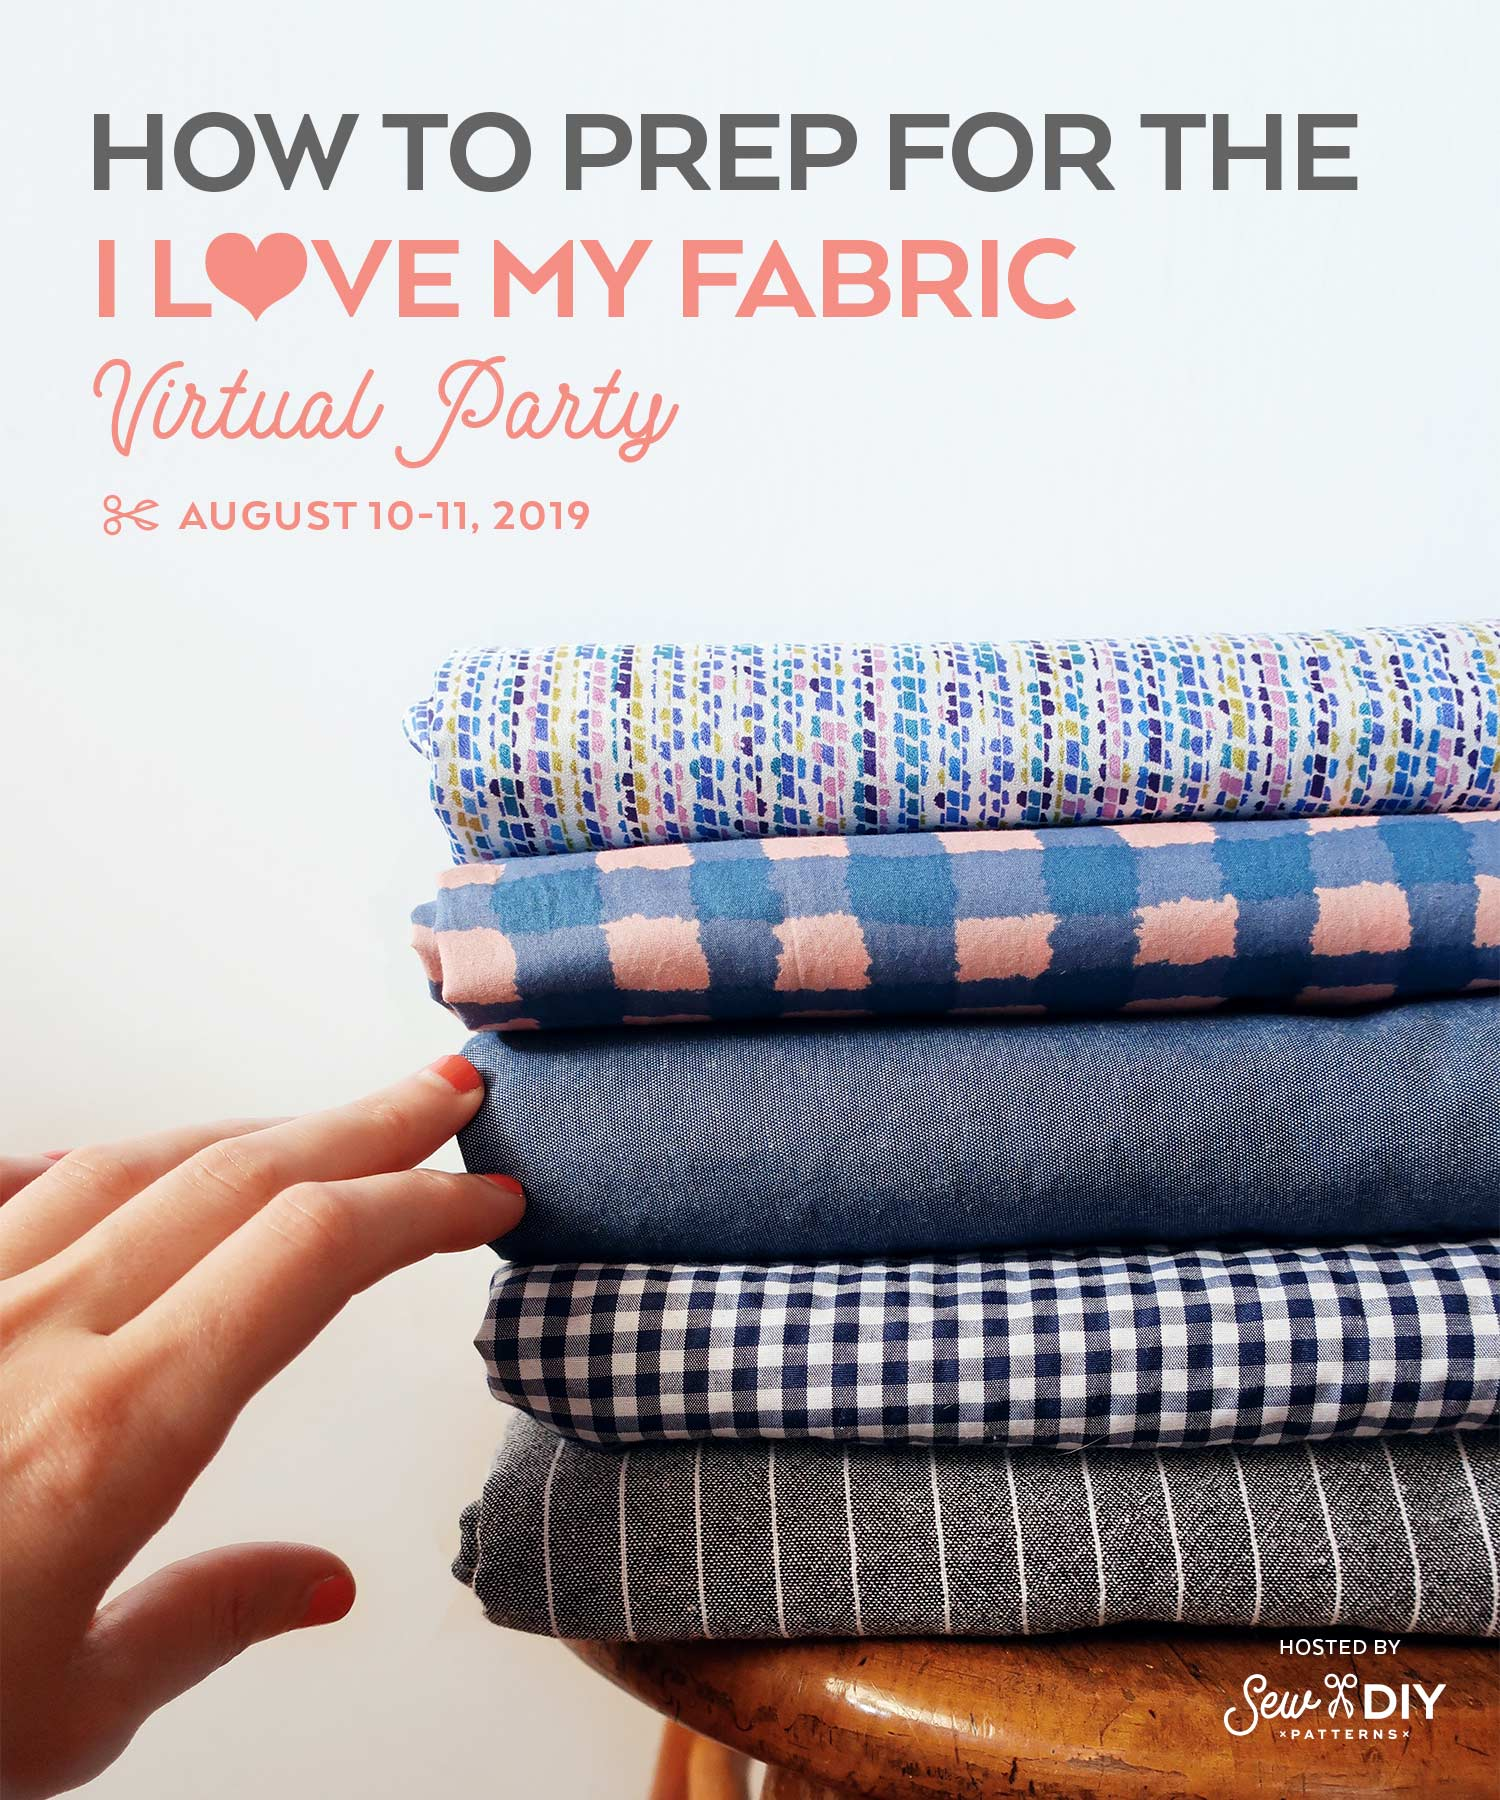 How to prepare for the I Love My Fabric Virtual Party